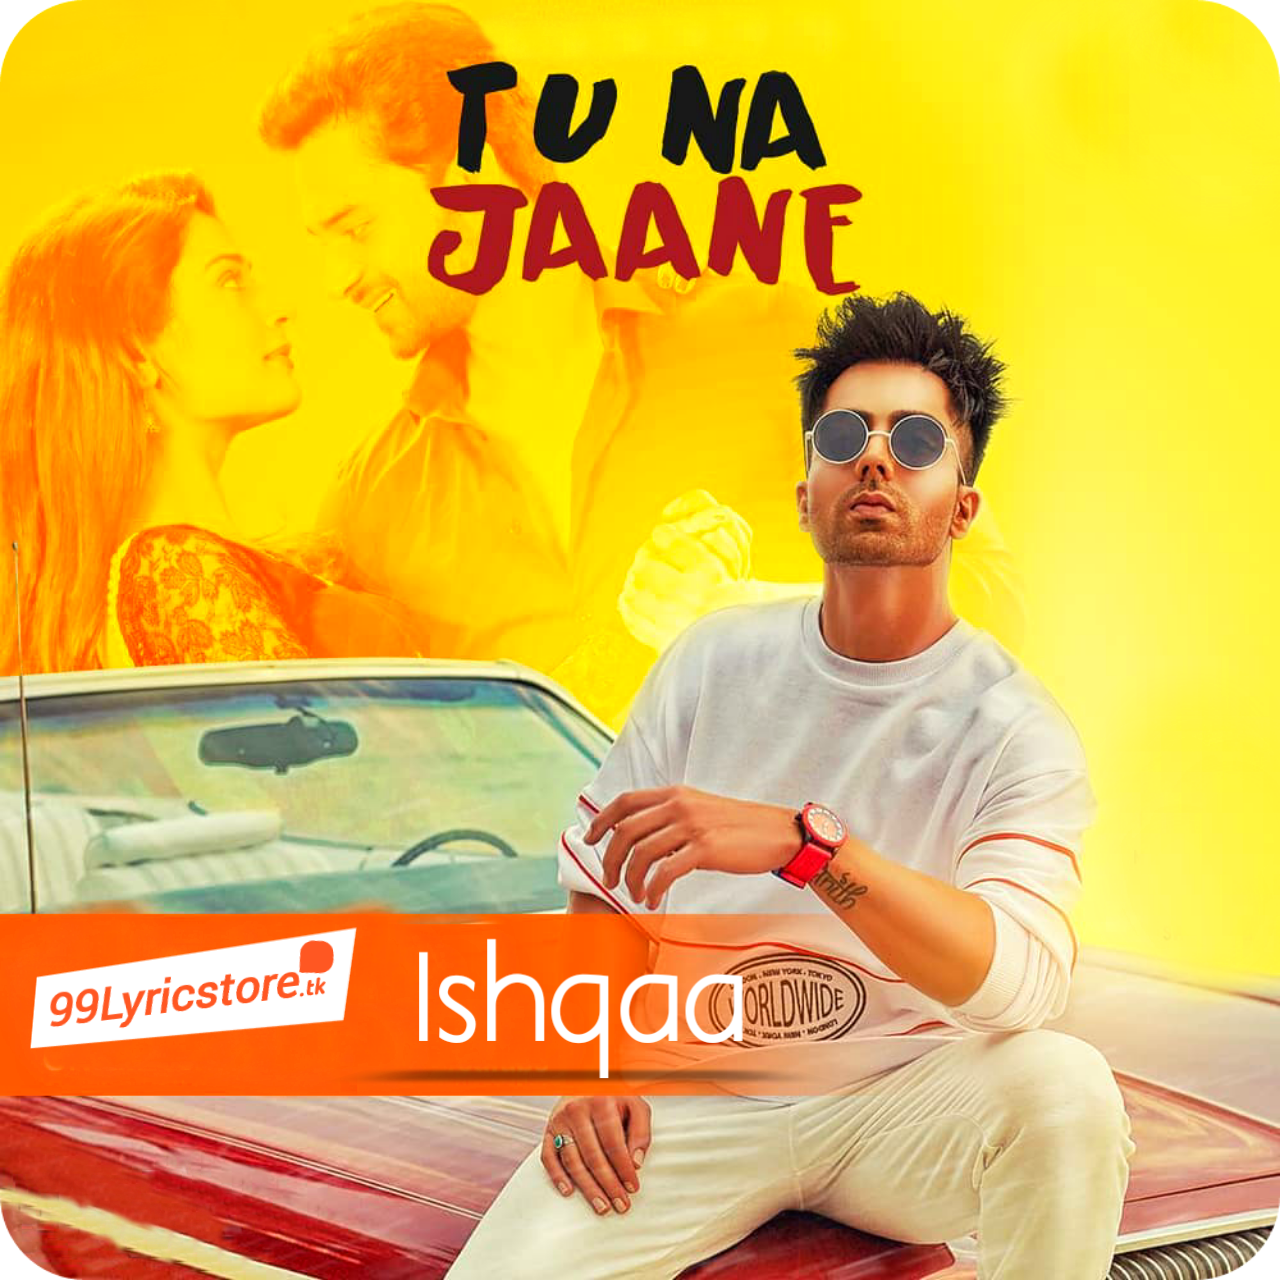 Tu na Jaane Hardy Sandhu Lyrics, Tu na Jaane latest Punjabi Song Lyrics, Tu na Jaane Ishqaa Song images, Harrdy Sandhu Song Tu na Jaane Lyrics, Ishqaa Tu na Jaane Hardy Sandhu Song Lyrics, latest Punjabi Song Lyrics